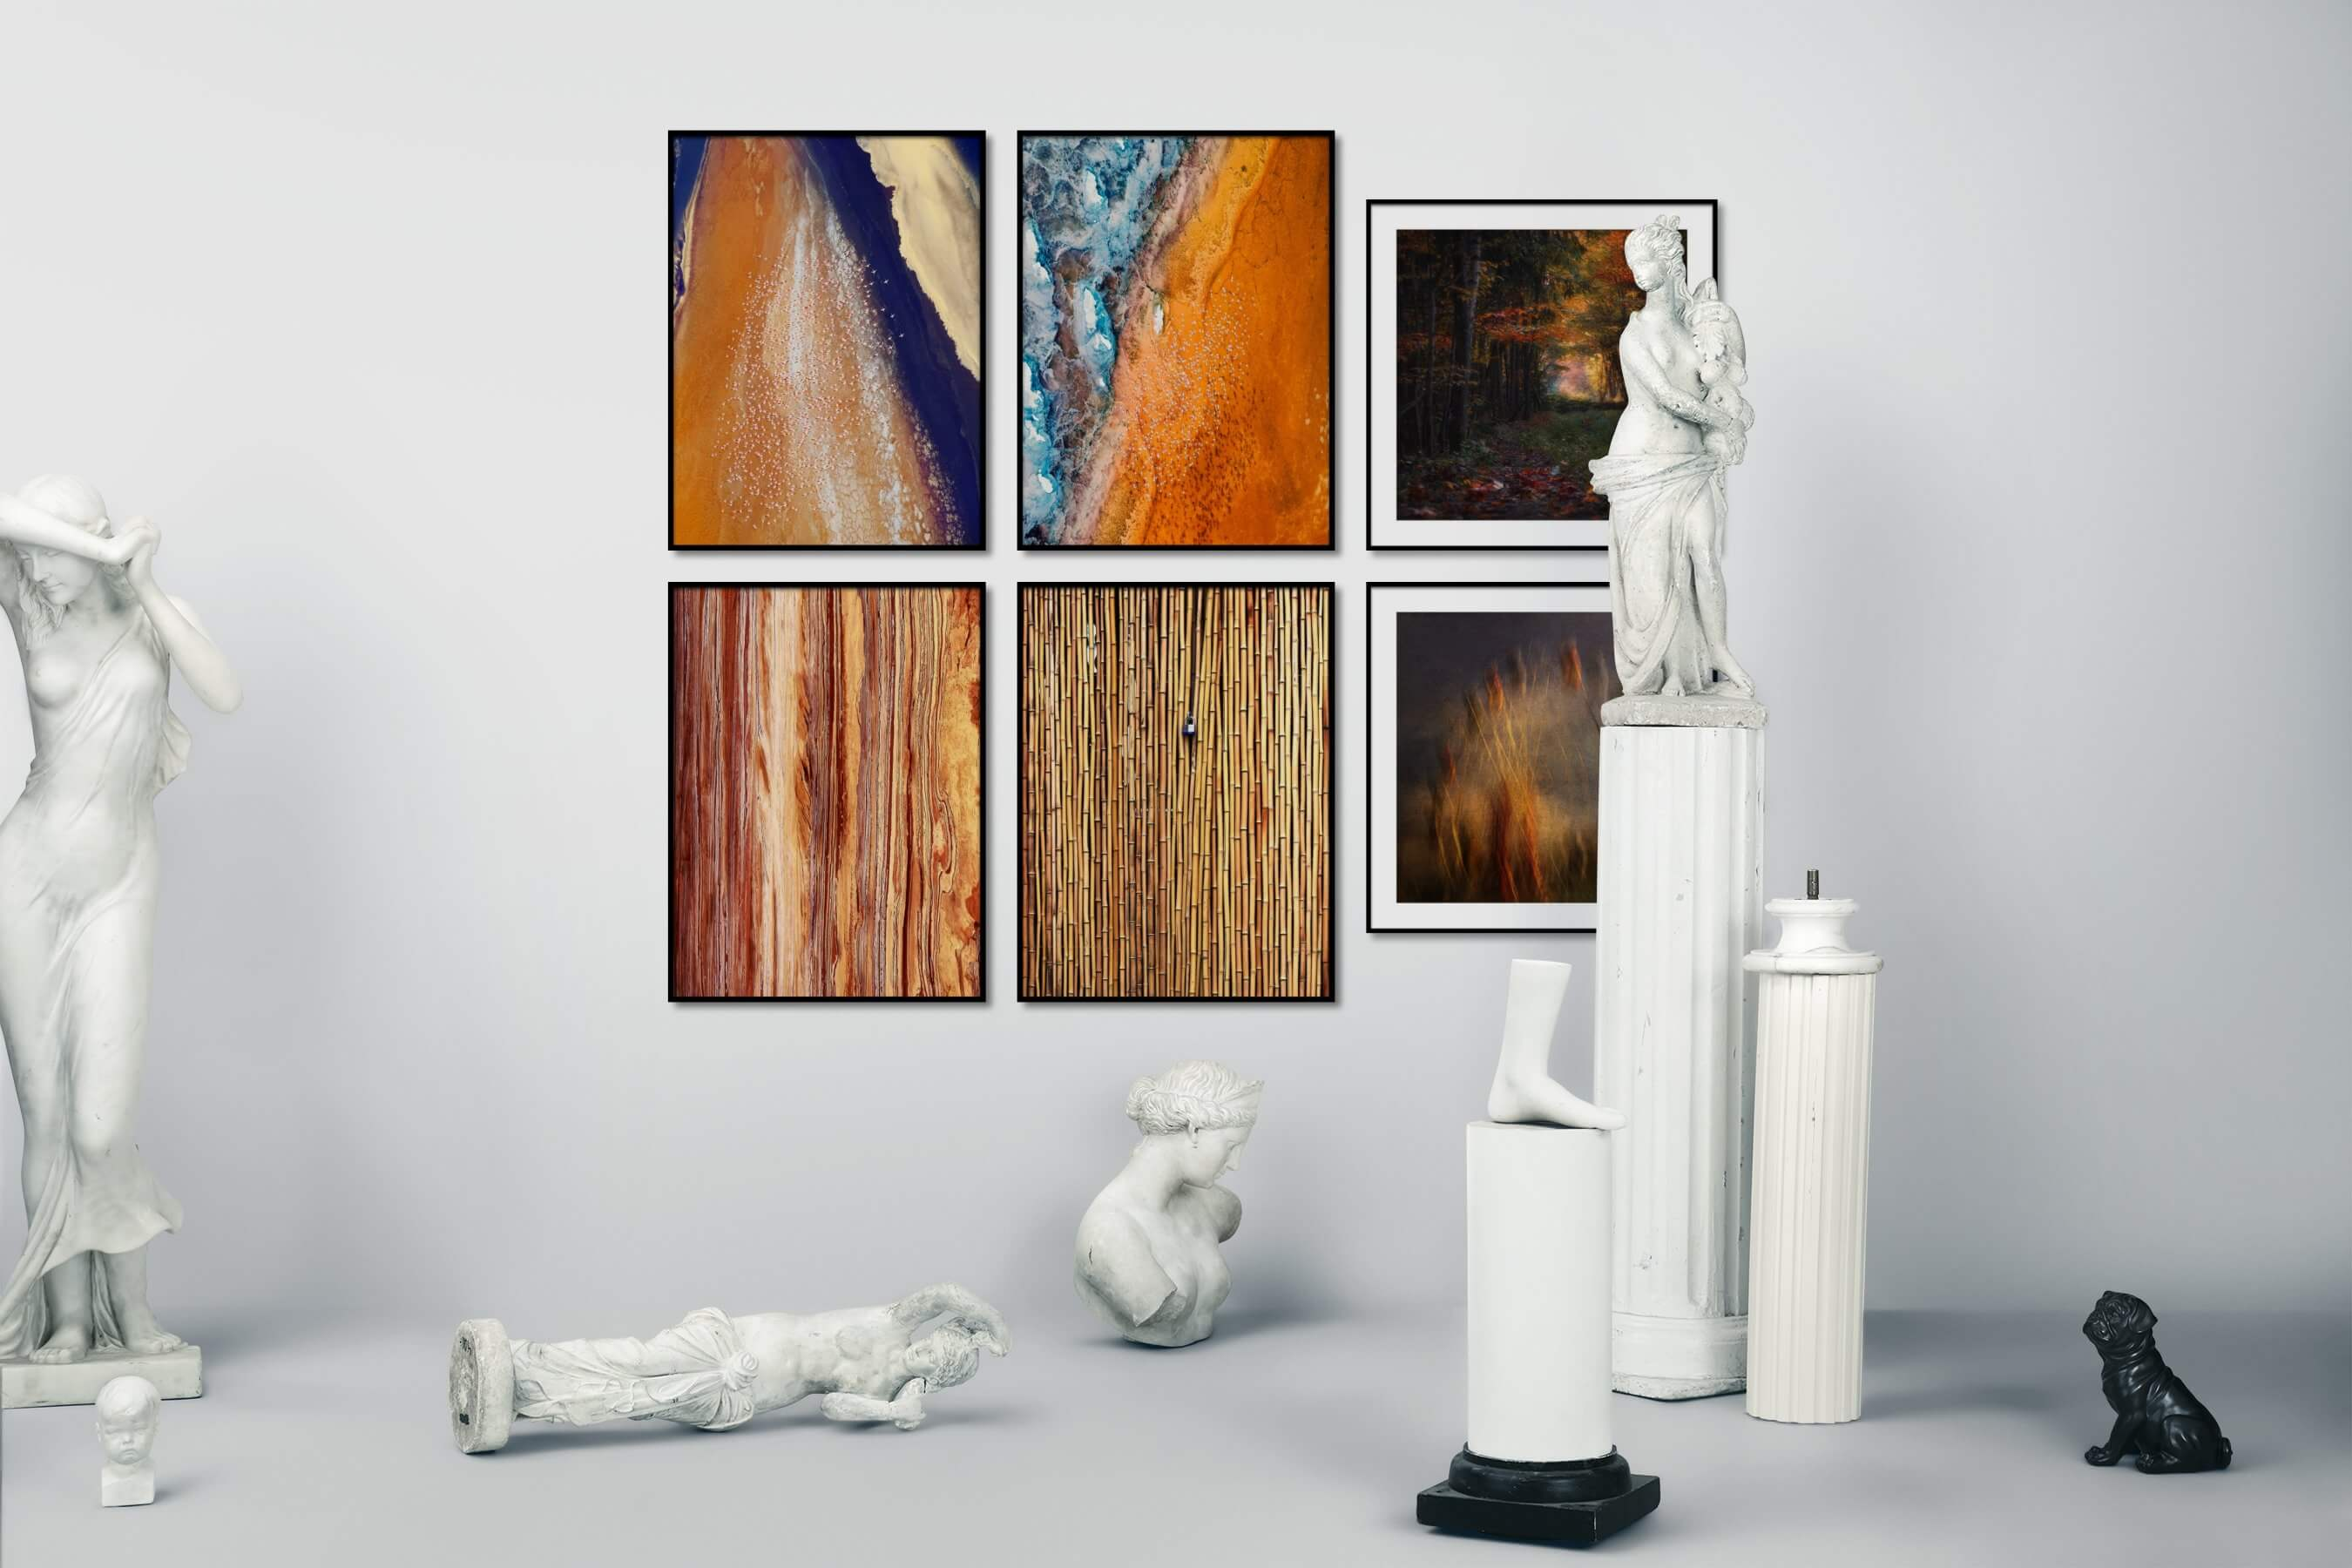 Gallery wall idea with six framed pictures arranged on a wall depicting For the Moderate, Nature, and For the Maximalist